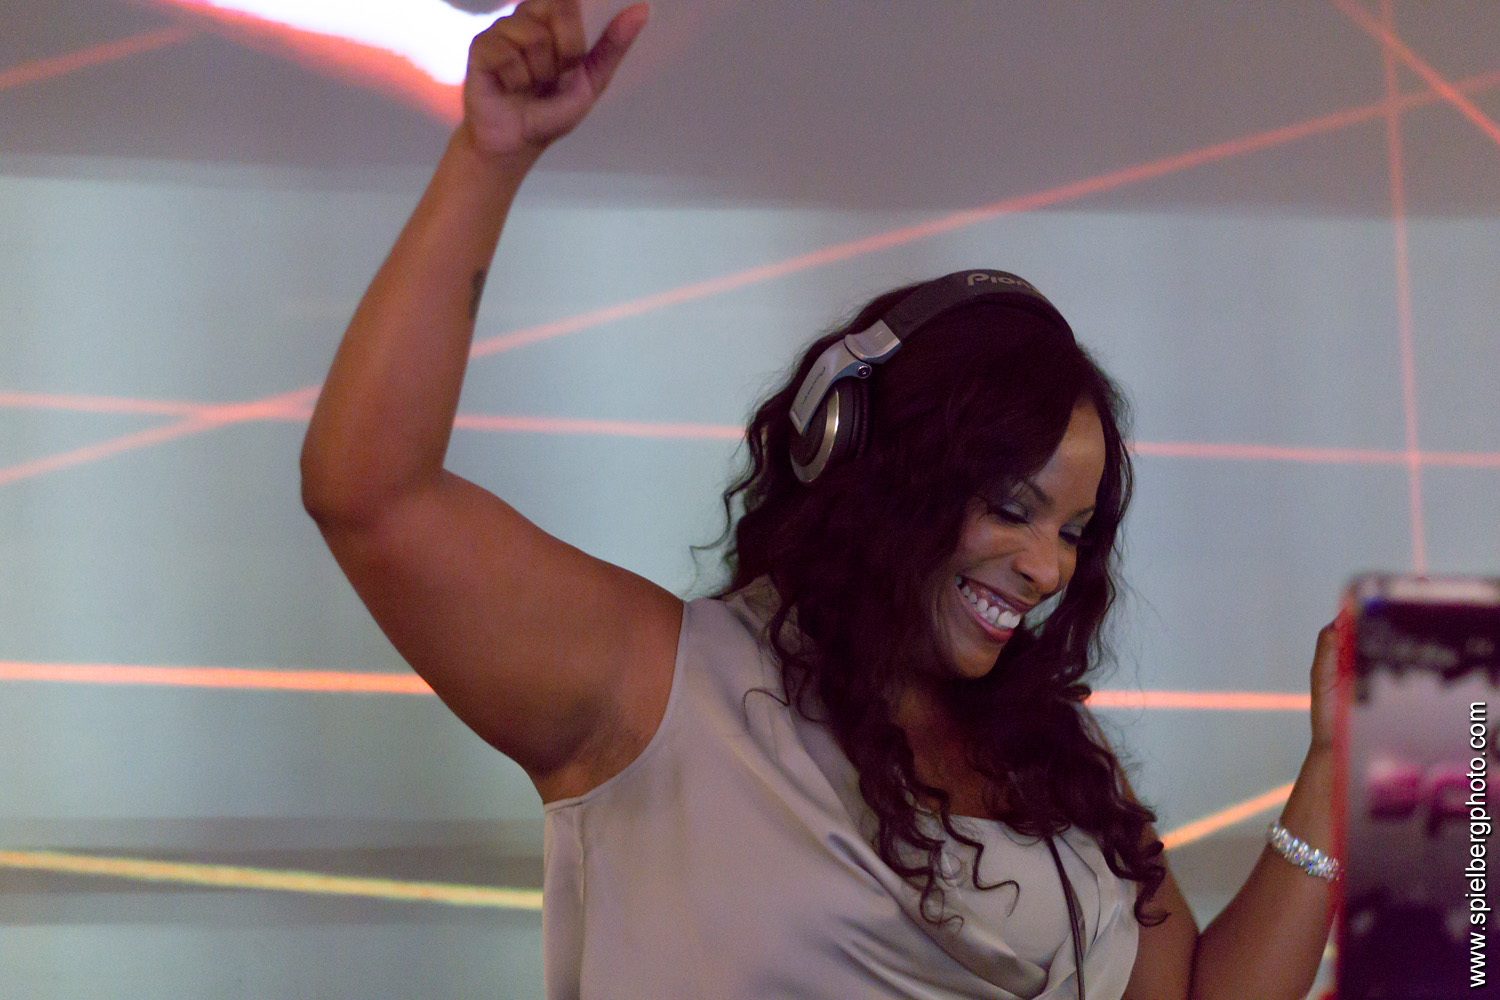 DJ Spinderella of Salt-N-Pepa